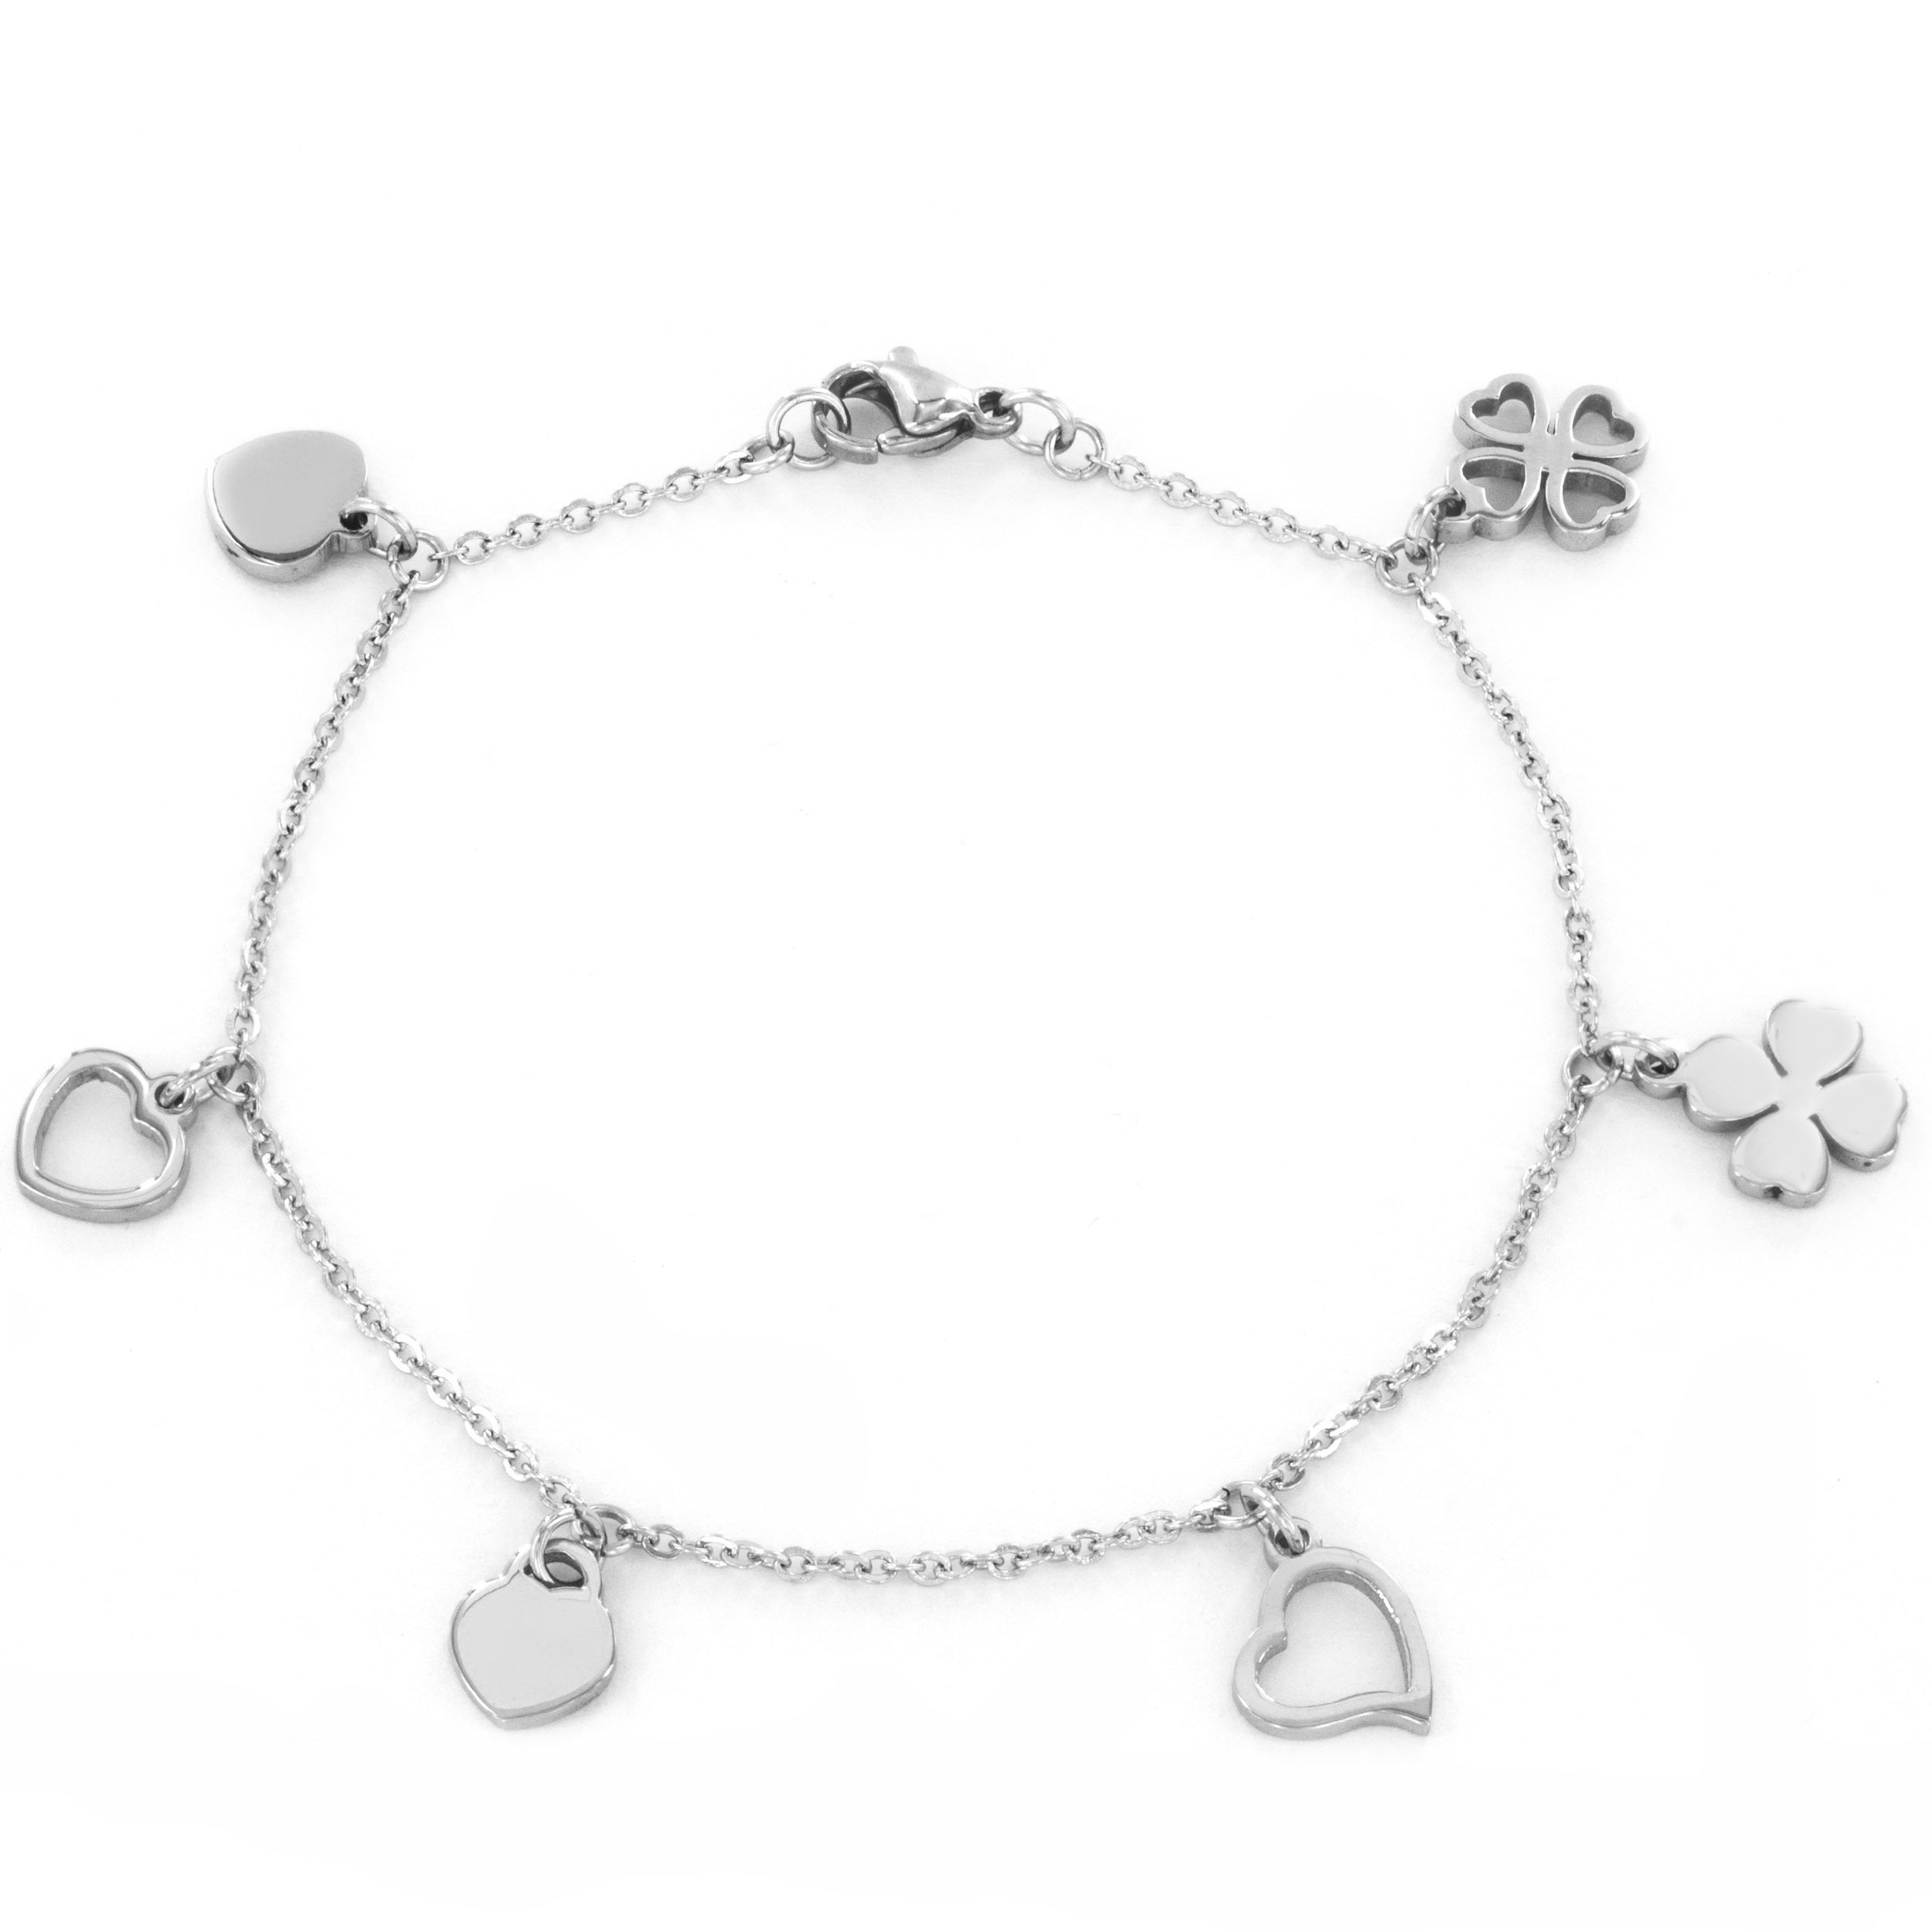 9 Inches Long West Coast Jewelry Sterling Silver Polished Elephant Anklet with 2 Inch Extender